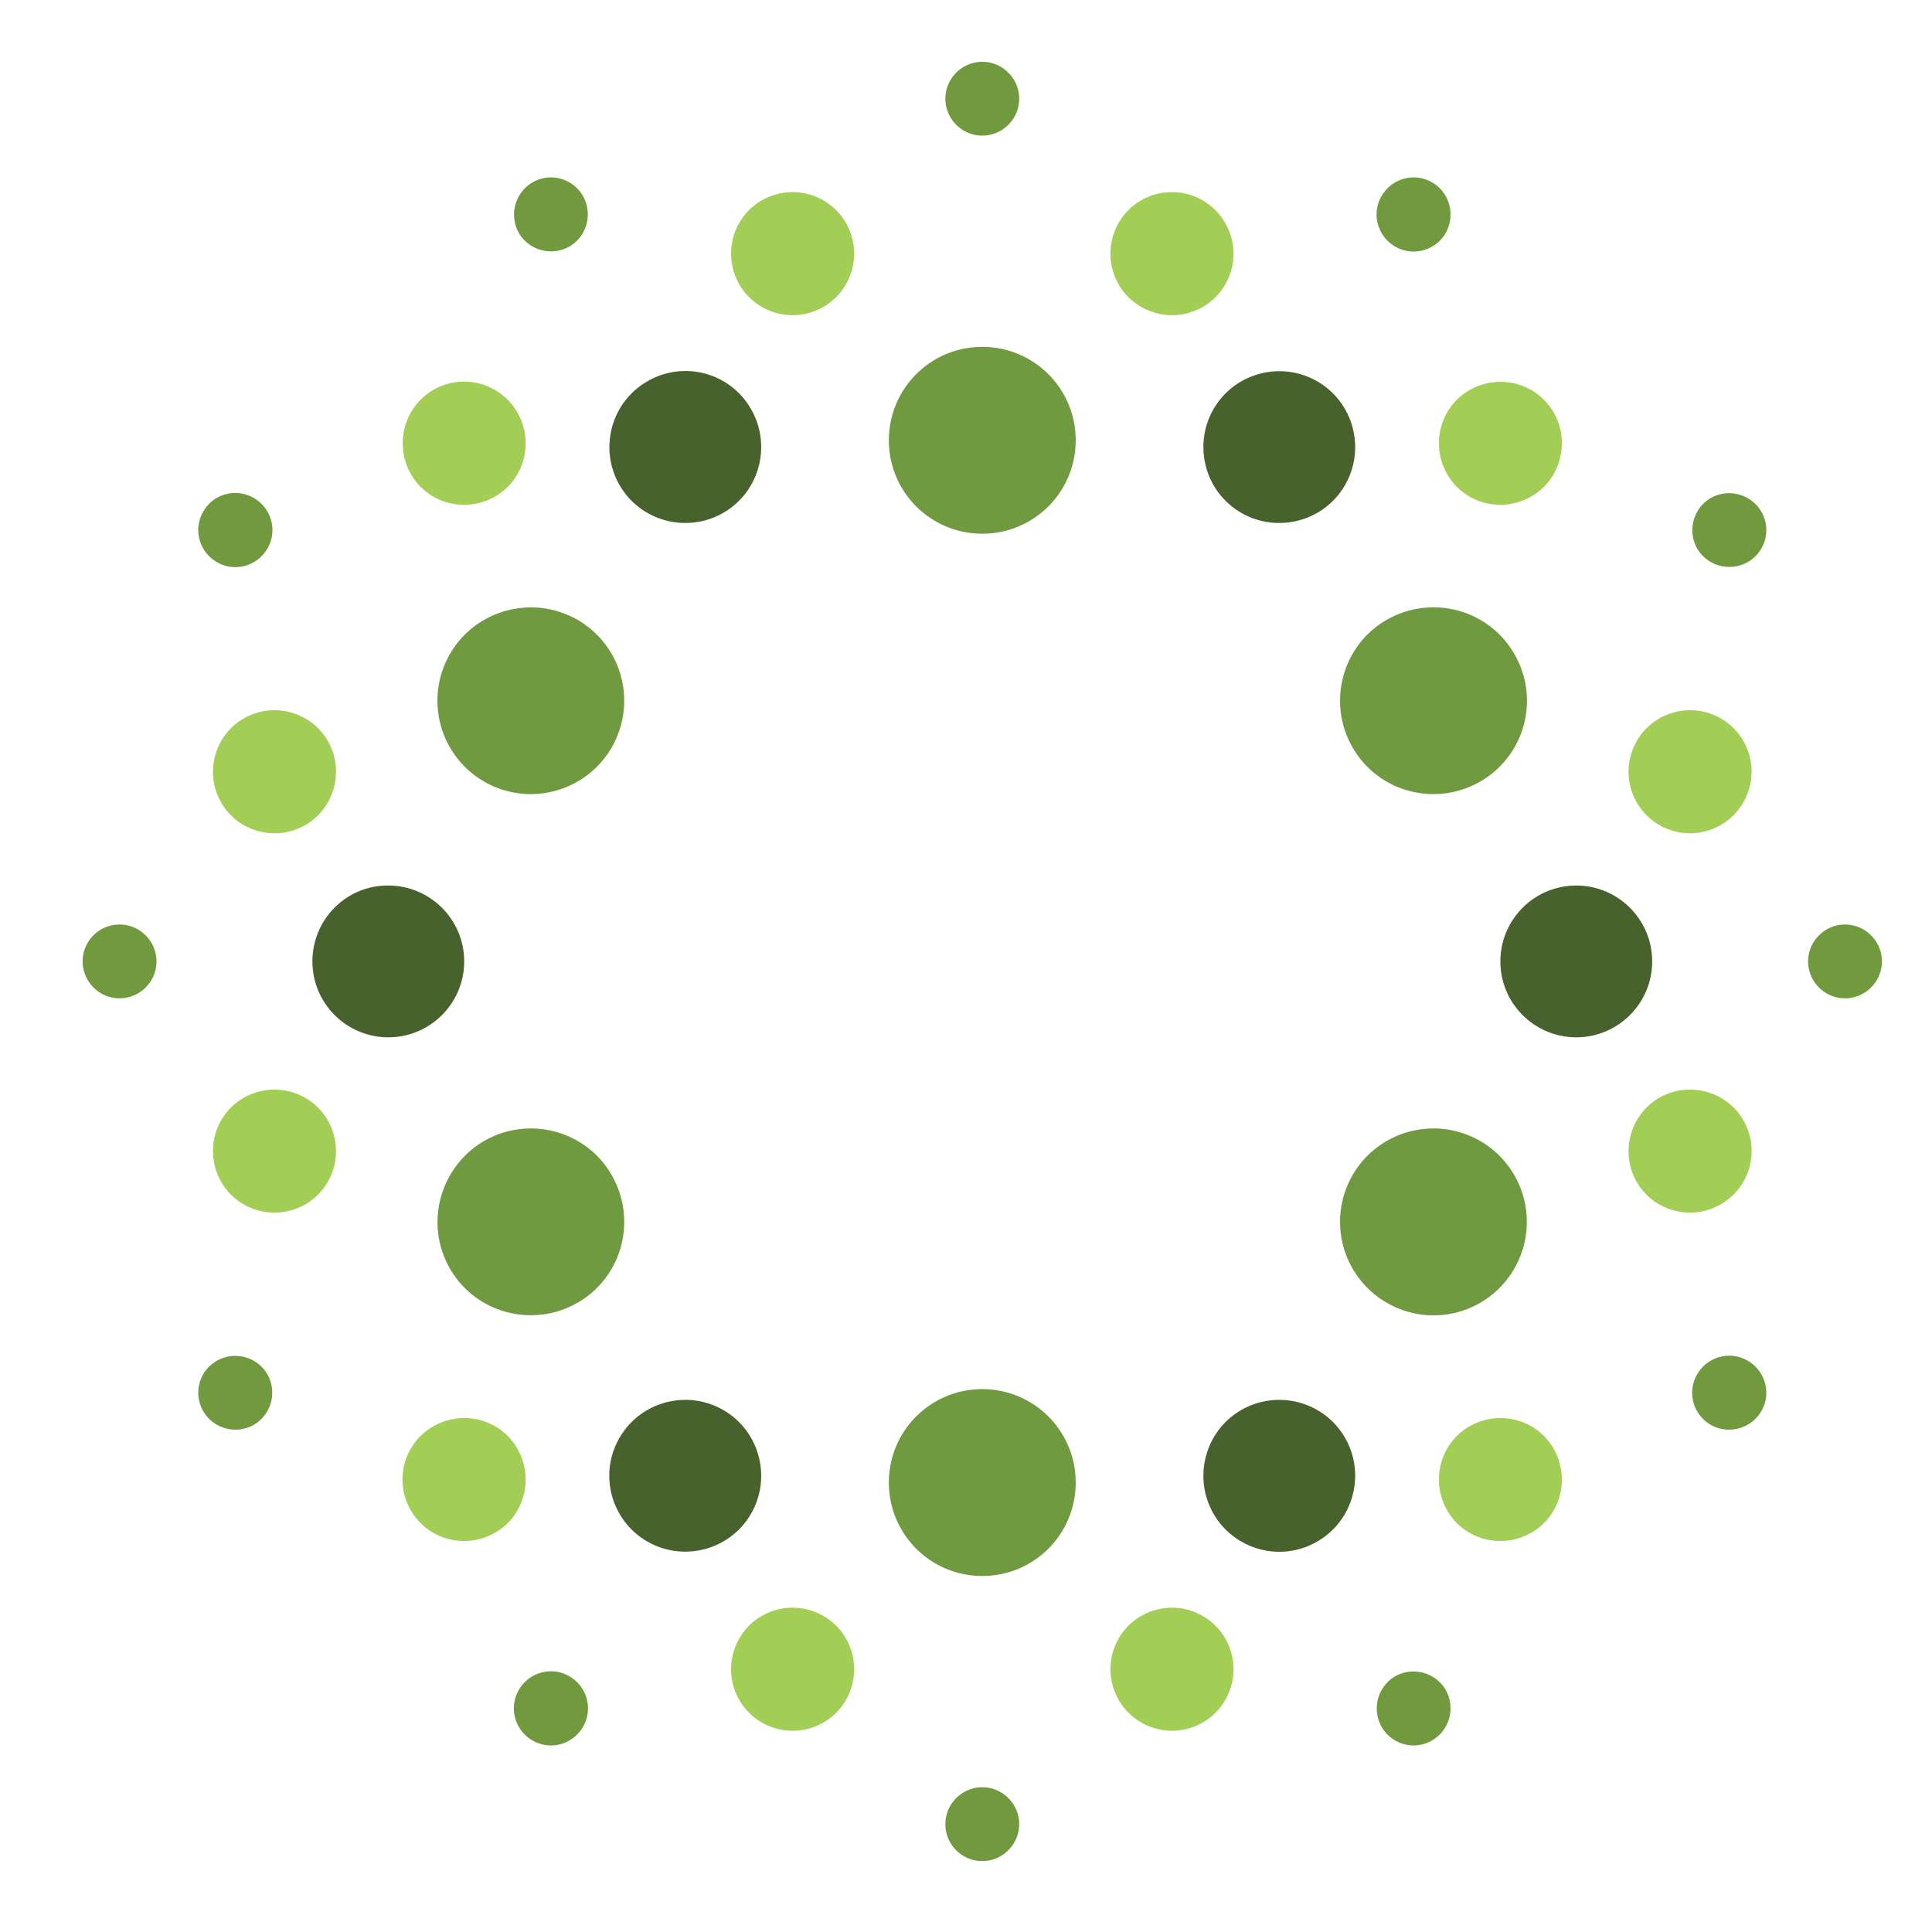 Dots from logo